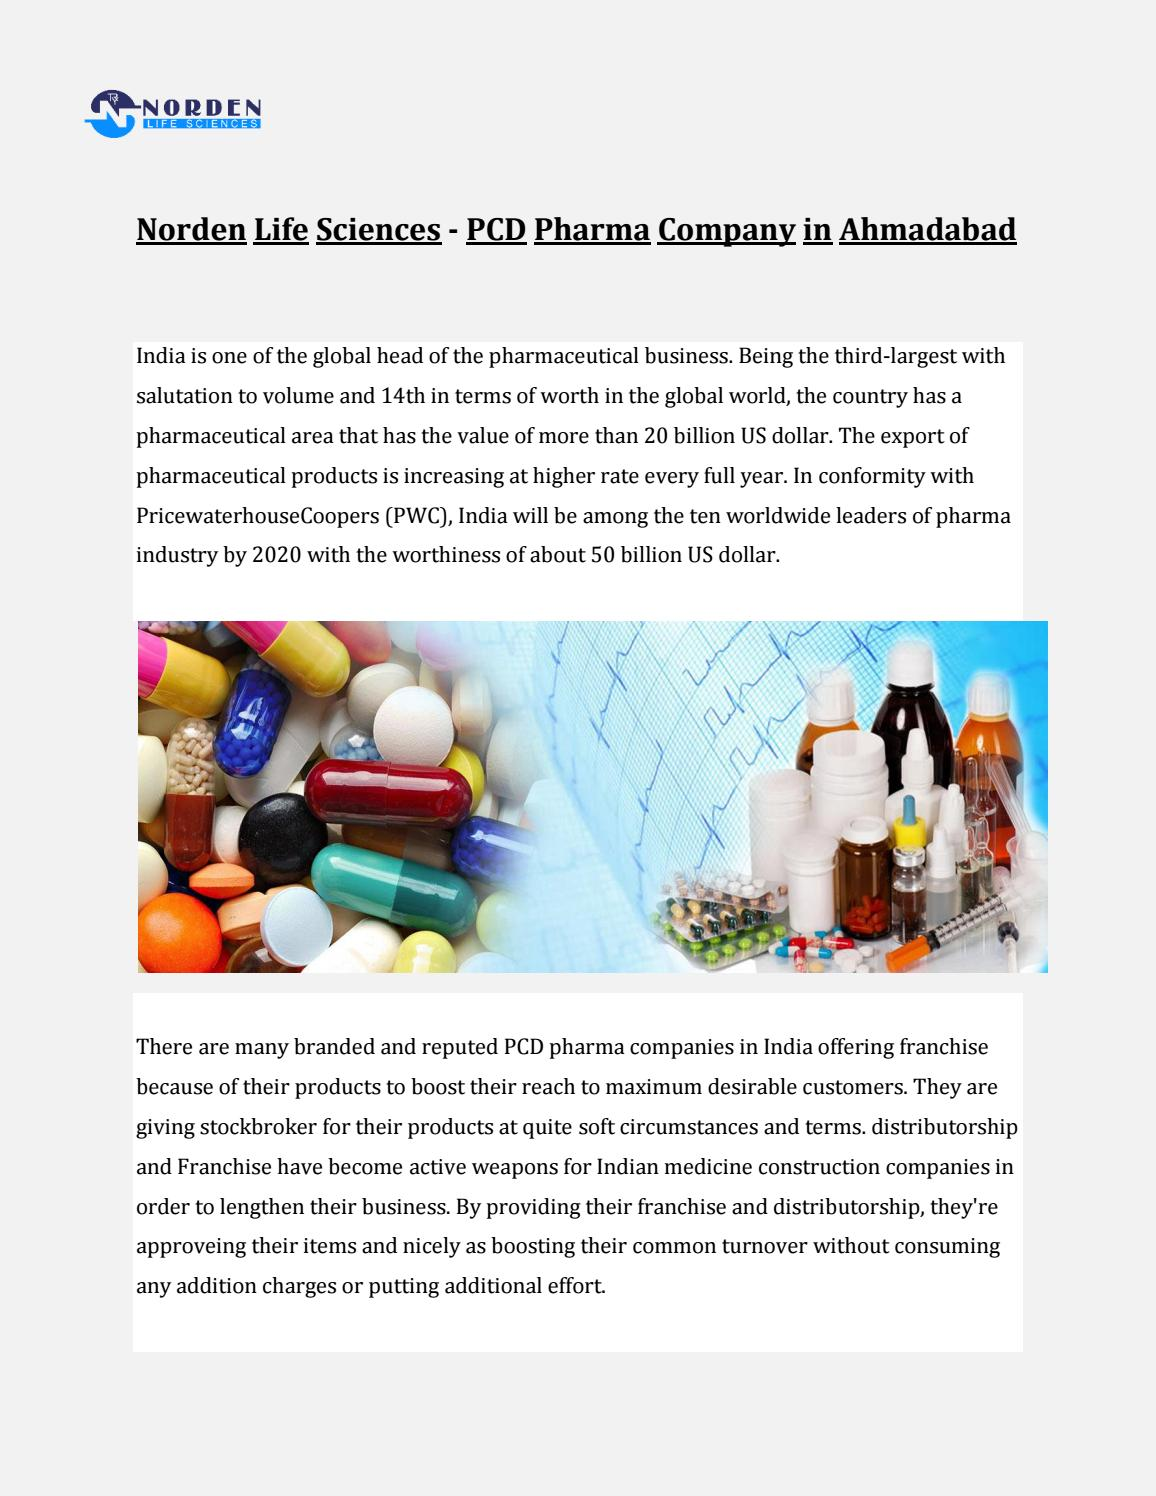 Franchise pharma company|Norden Life Sciences by nordenlifes - issuu